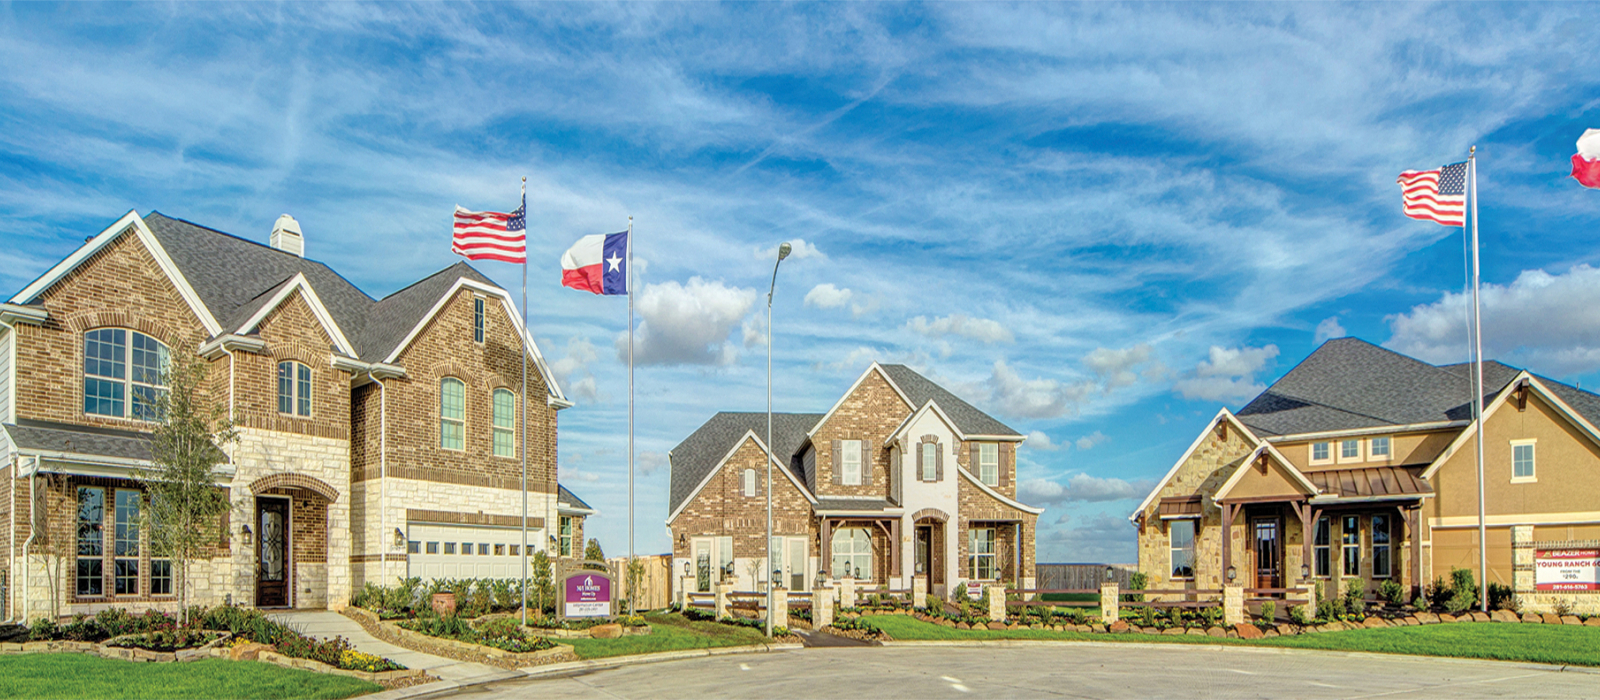 Katy Home New Home Builders In Katy Tx Young Ranch